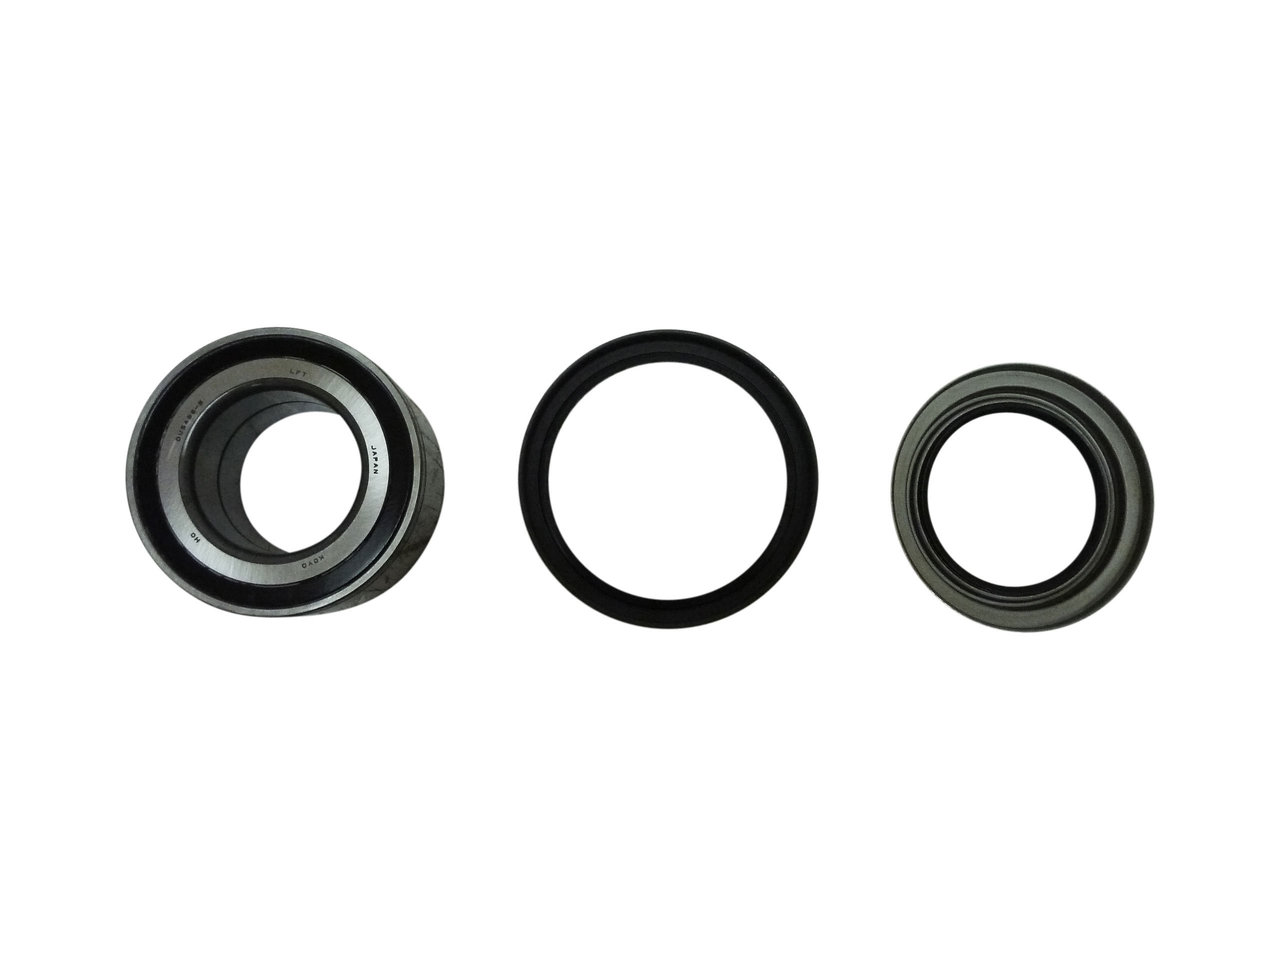 Front Wheel Bearing Kit Suitable For Prado 95 Series On Wbk5